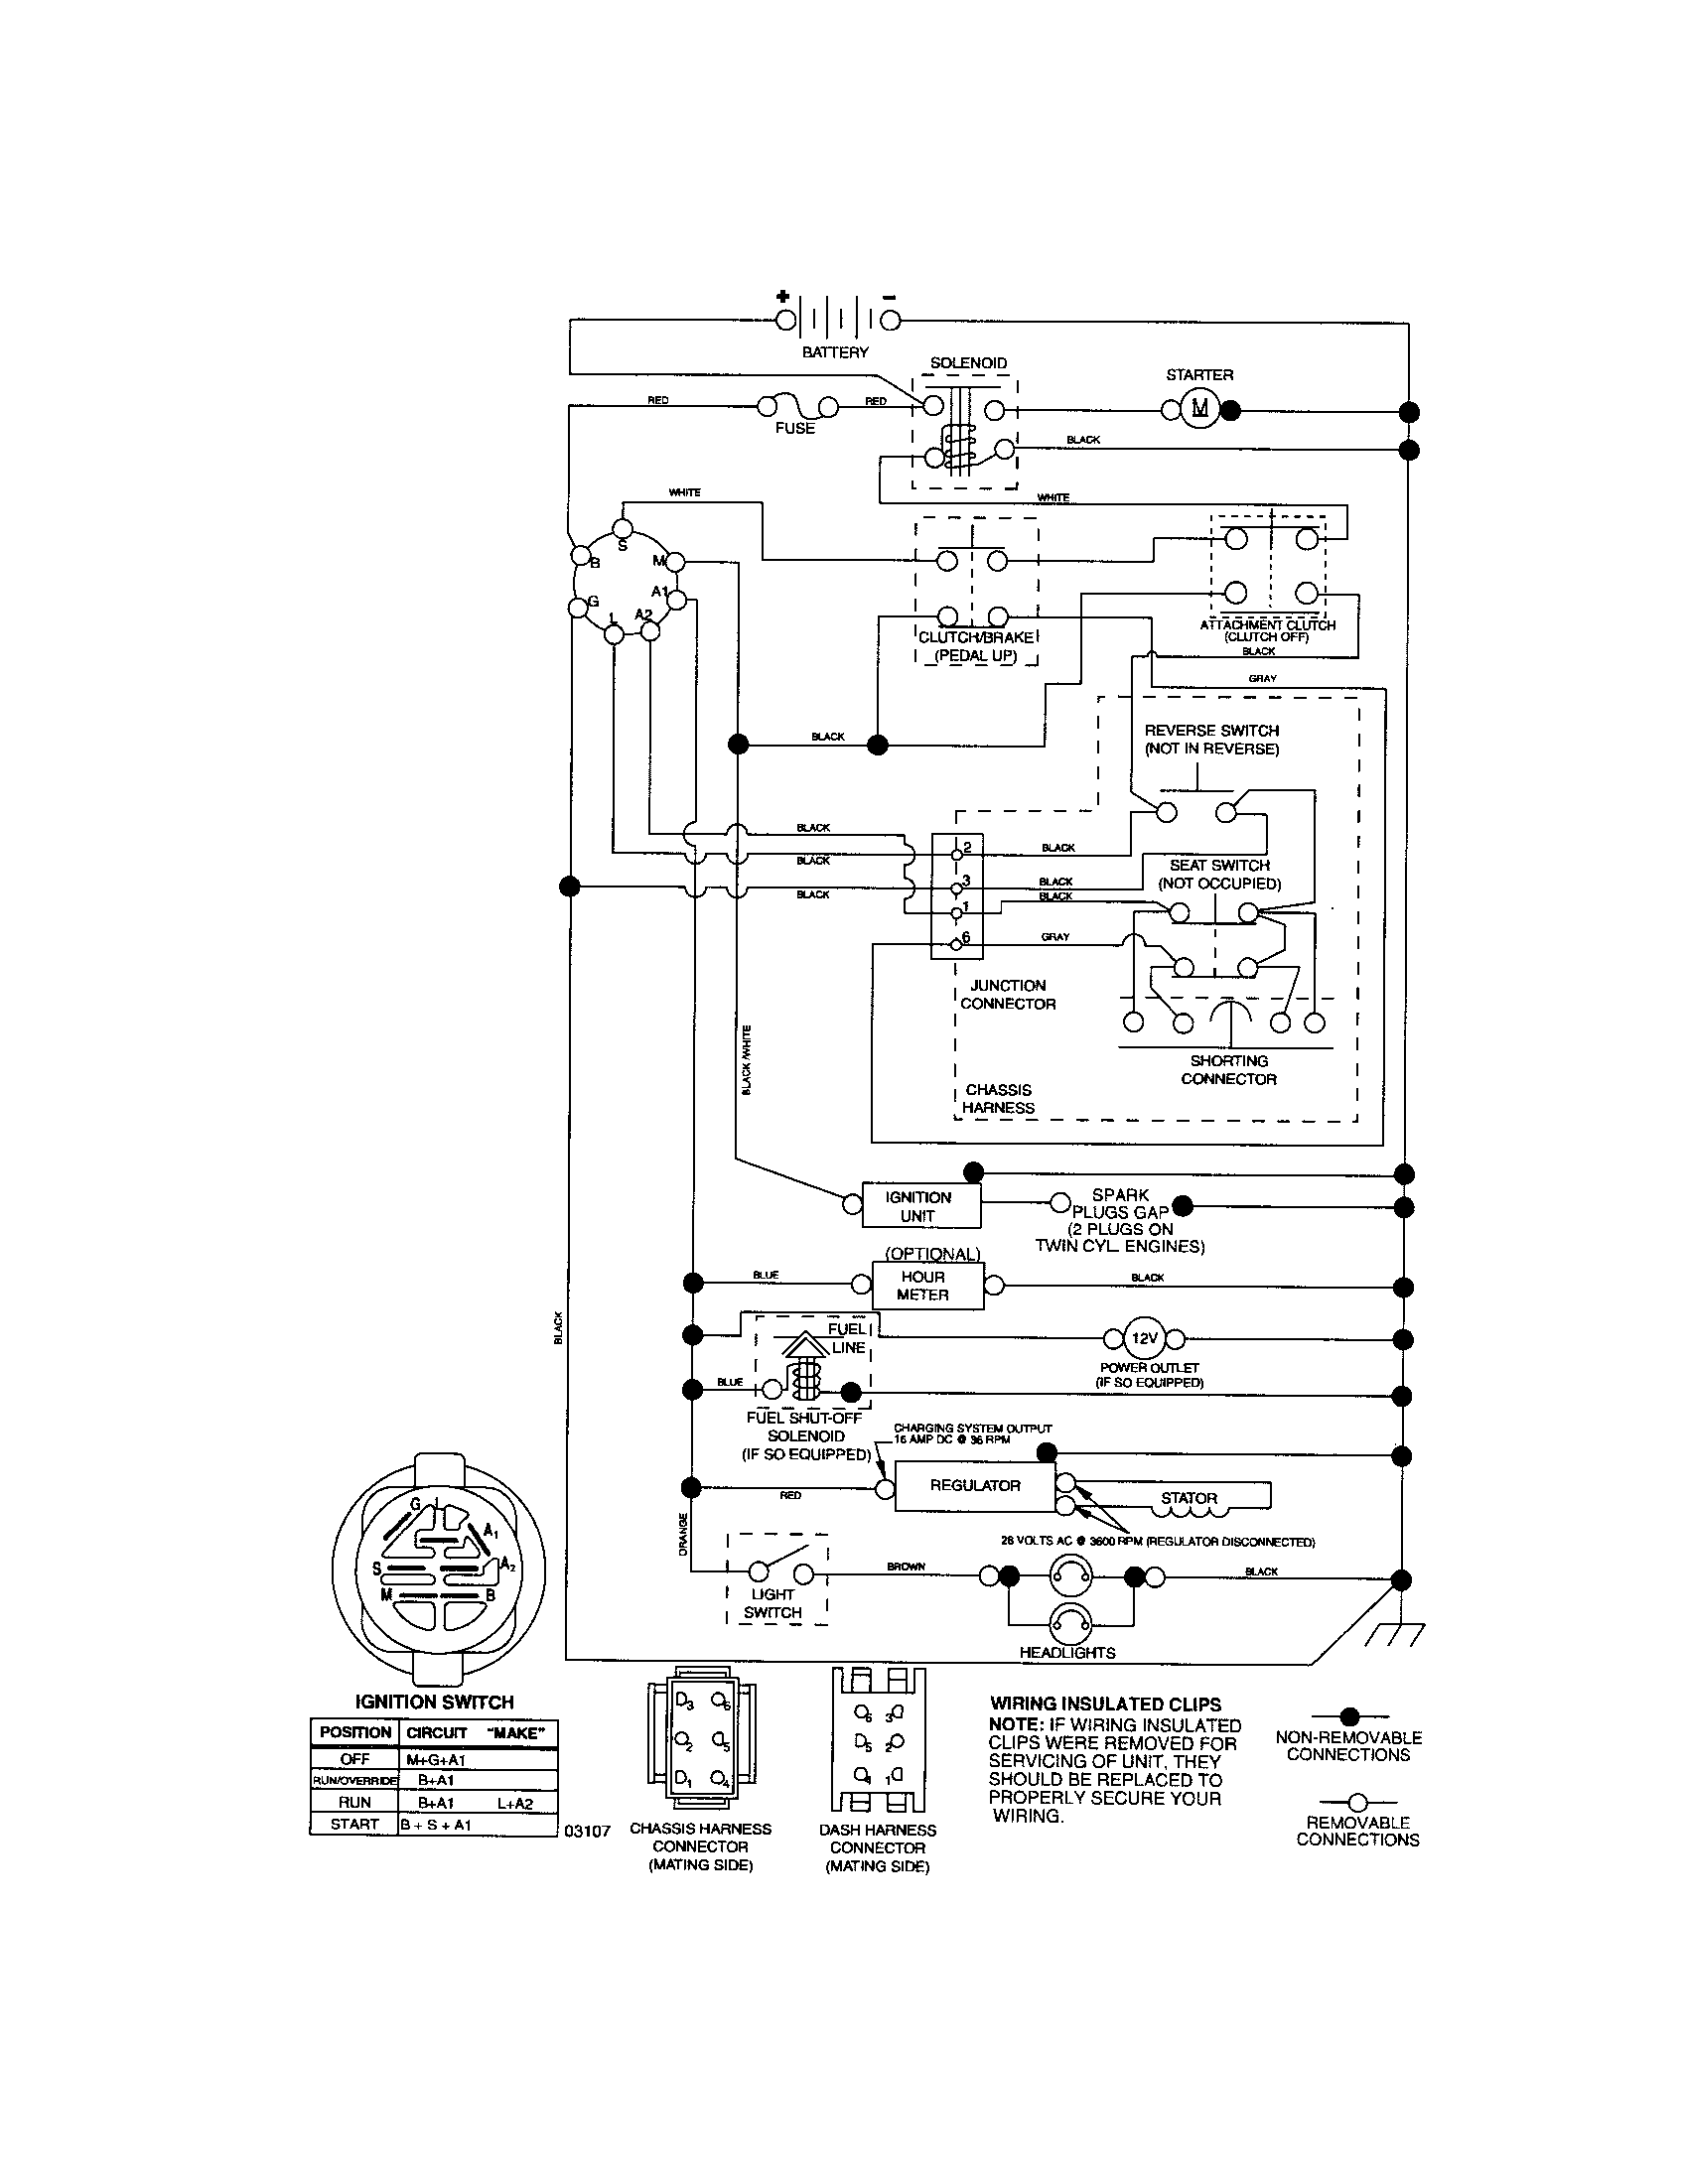 craftsman riding mower electrical diagram wiring diagram craftsman kohler 17 hp wiring diagram free download [ 1696 x 2200 Pixel ]